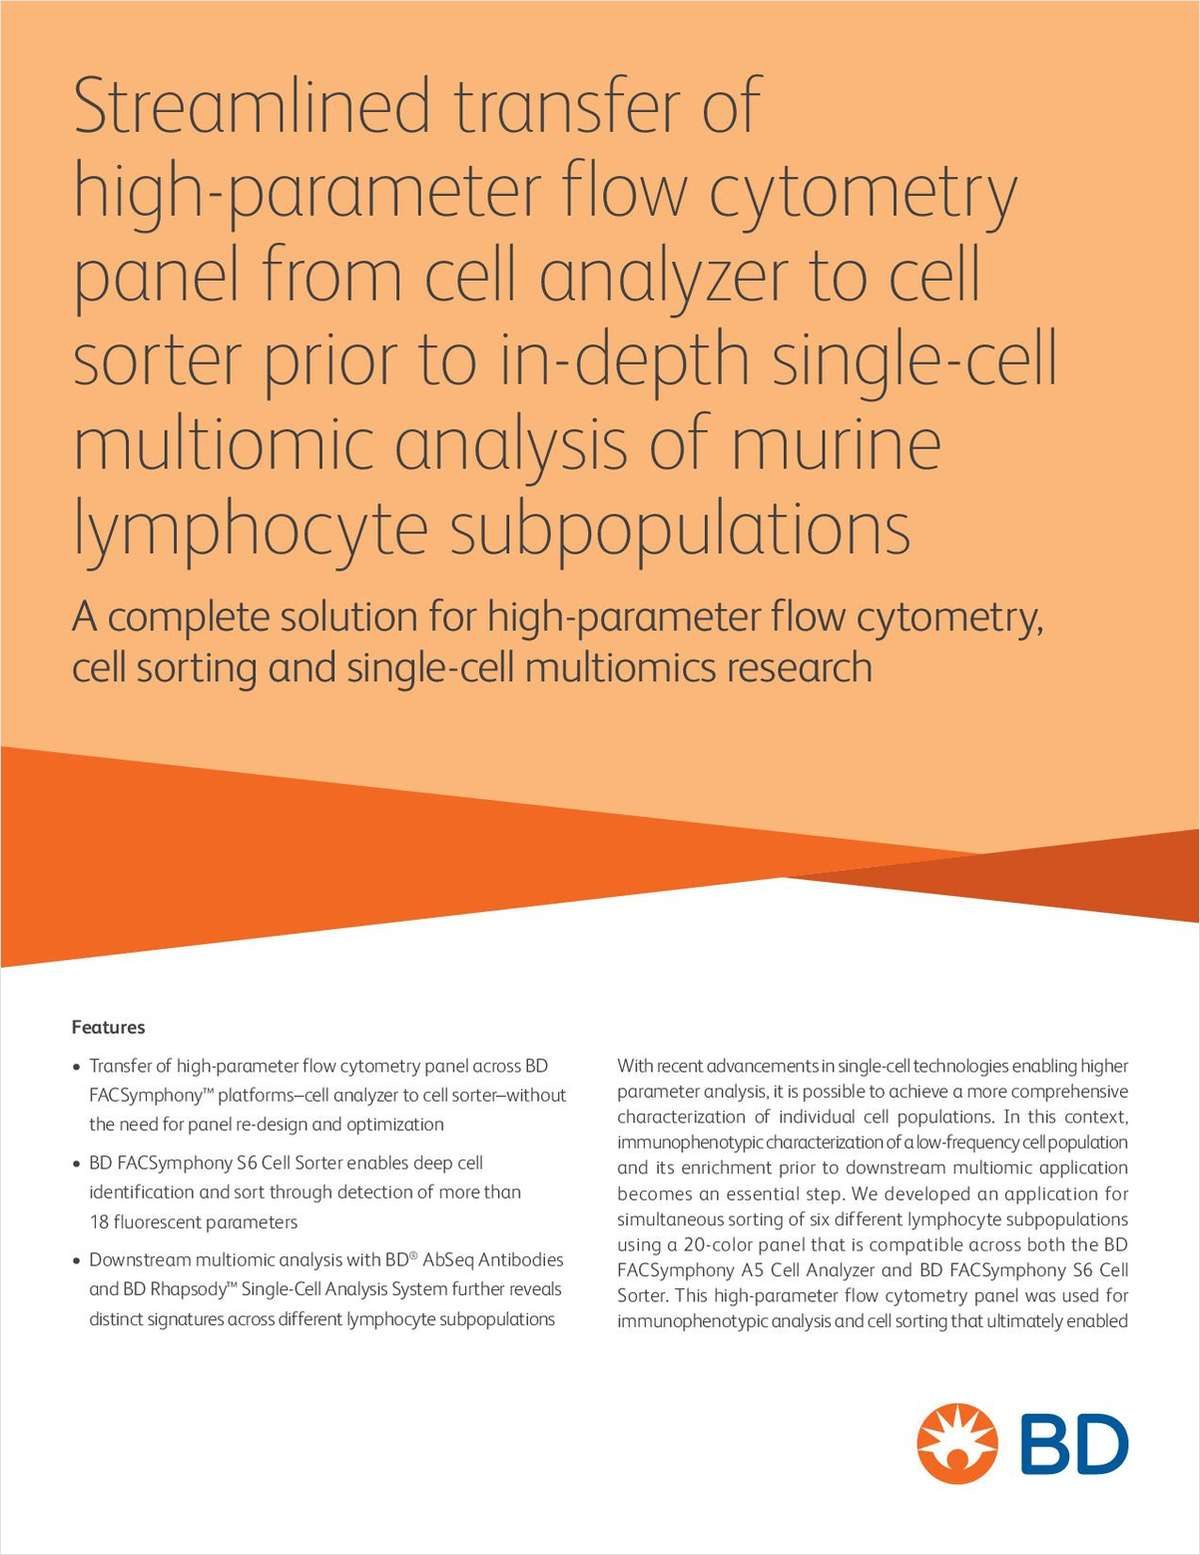 Streamlined Transfer of High-Parameter Flow Cytometry Panel From Cell Analyzer to Cell Sorter Prior To In-Depth Single-Cell Multiomic Analysis of Murine Lymphocyte Subpopulations